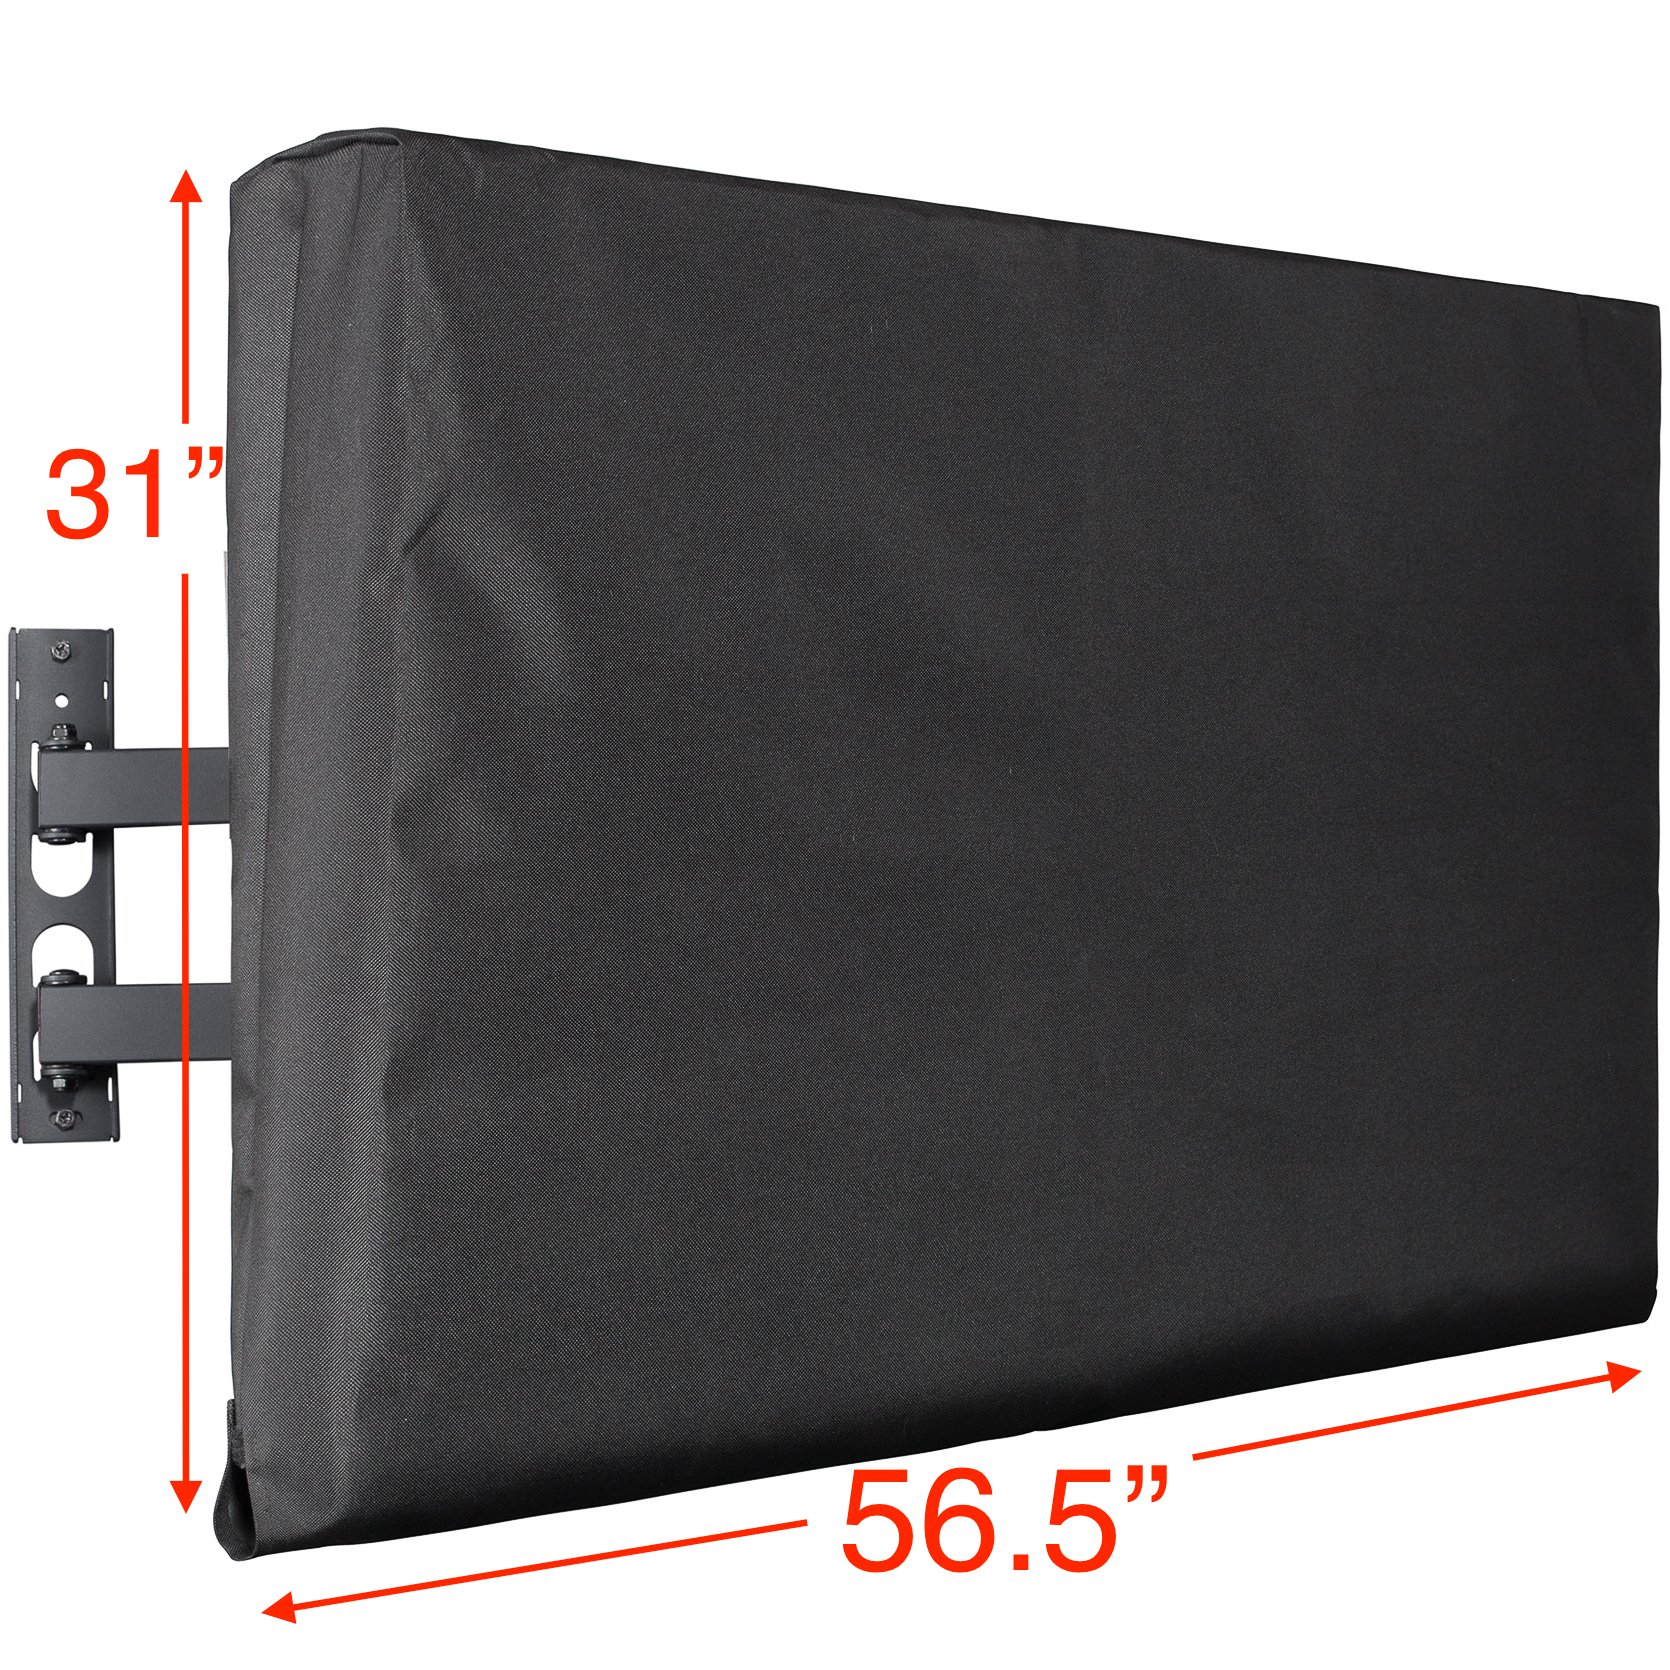 Kuzy Outdoor TV Cover 55 inch, Outdoor TV Covers Weatherproof for 55 inch Flat Screen TV - Fits Most Wall TV Mount, Hand Made in USA - Black